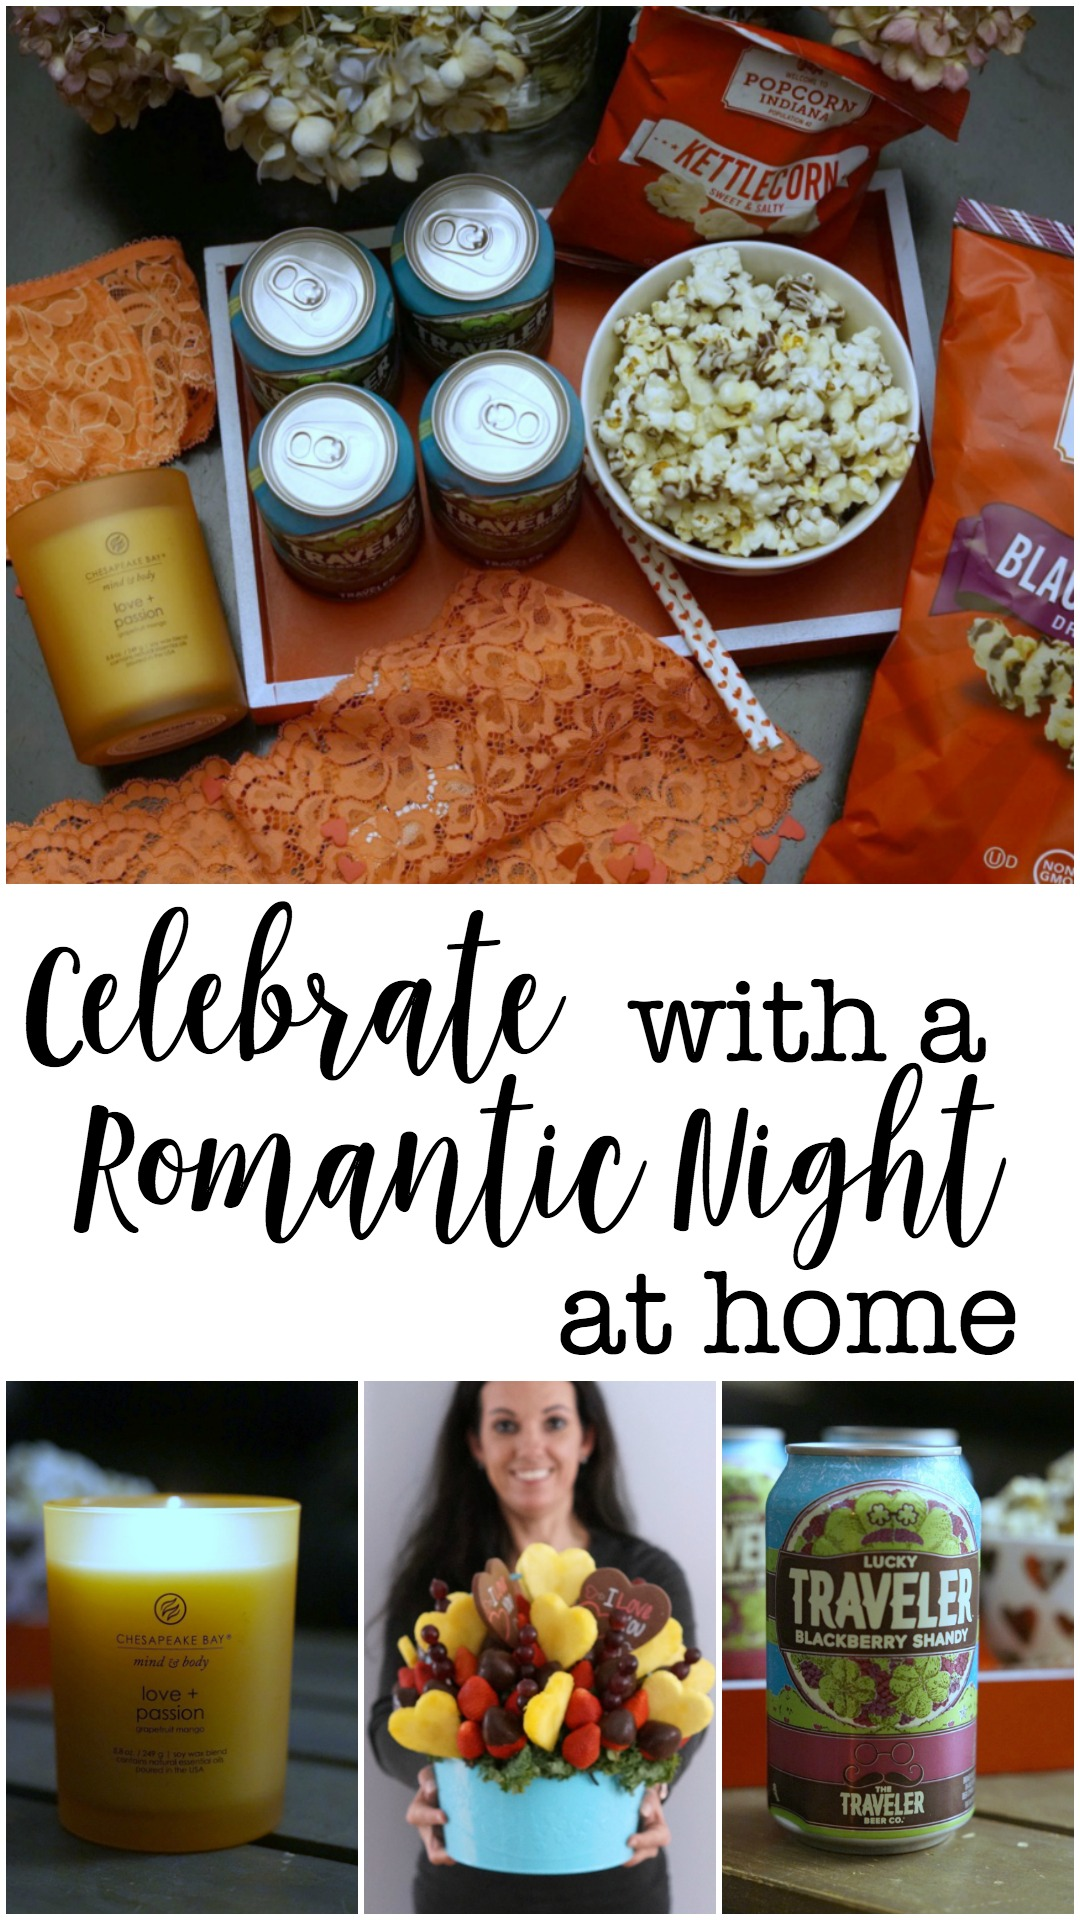 It is easier to celebrate a romantic night at home than you think! Valentine's Day is on everyone's mind right now - and with the right snacks, beverages, and other goodies you can have a romantic night at home easily.